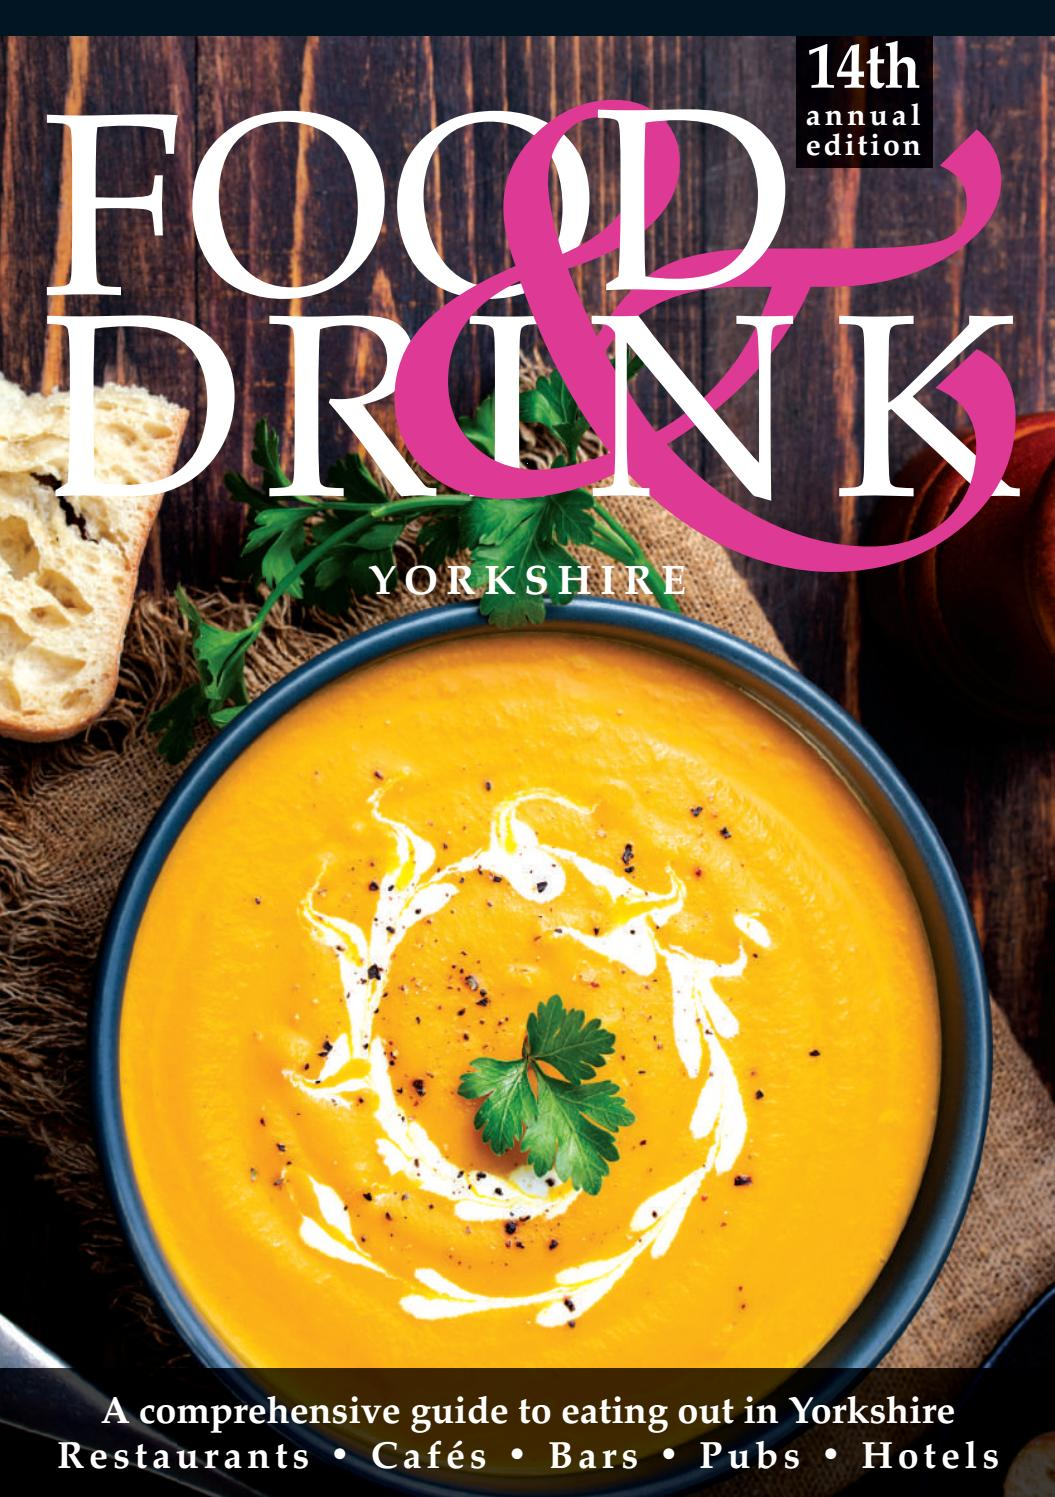 Yorkshire Food Drink Guide 2019 By Food Drink Guides Issuu